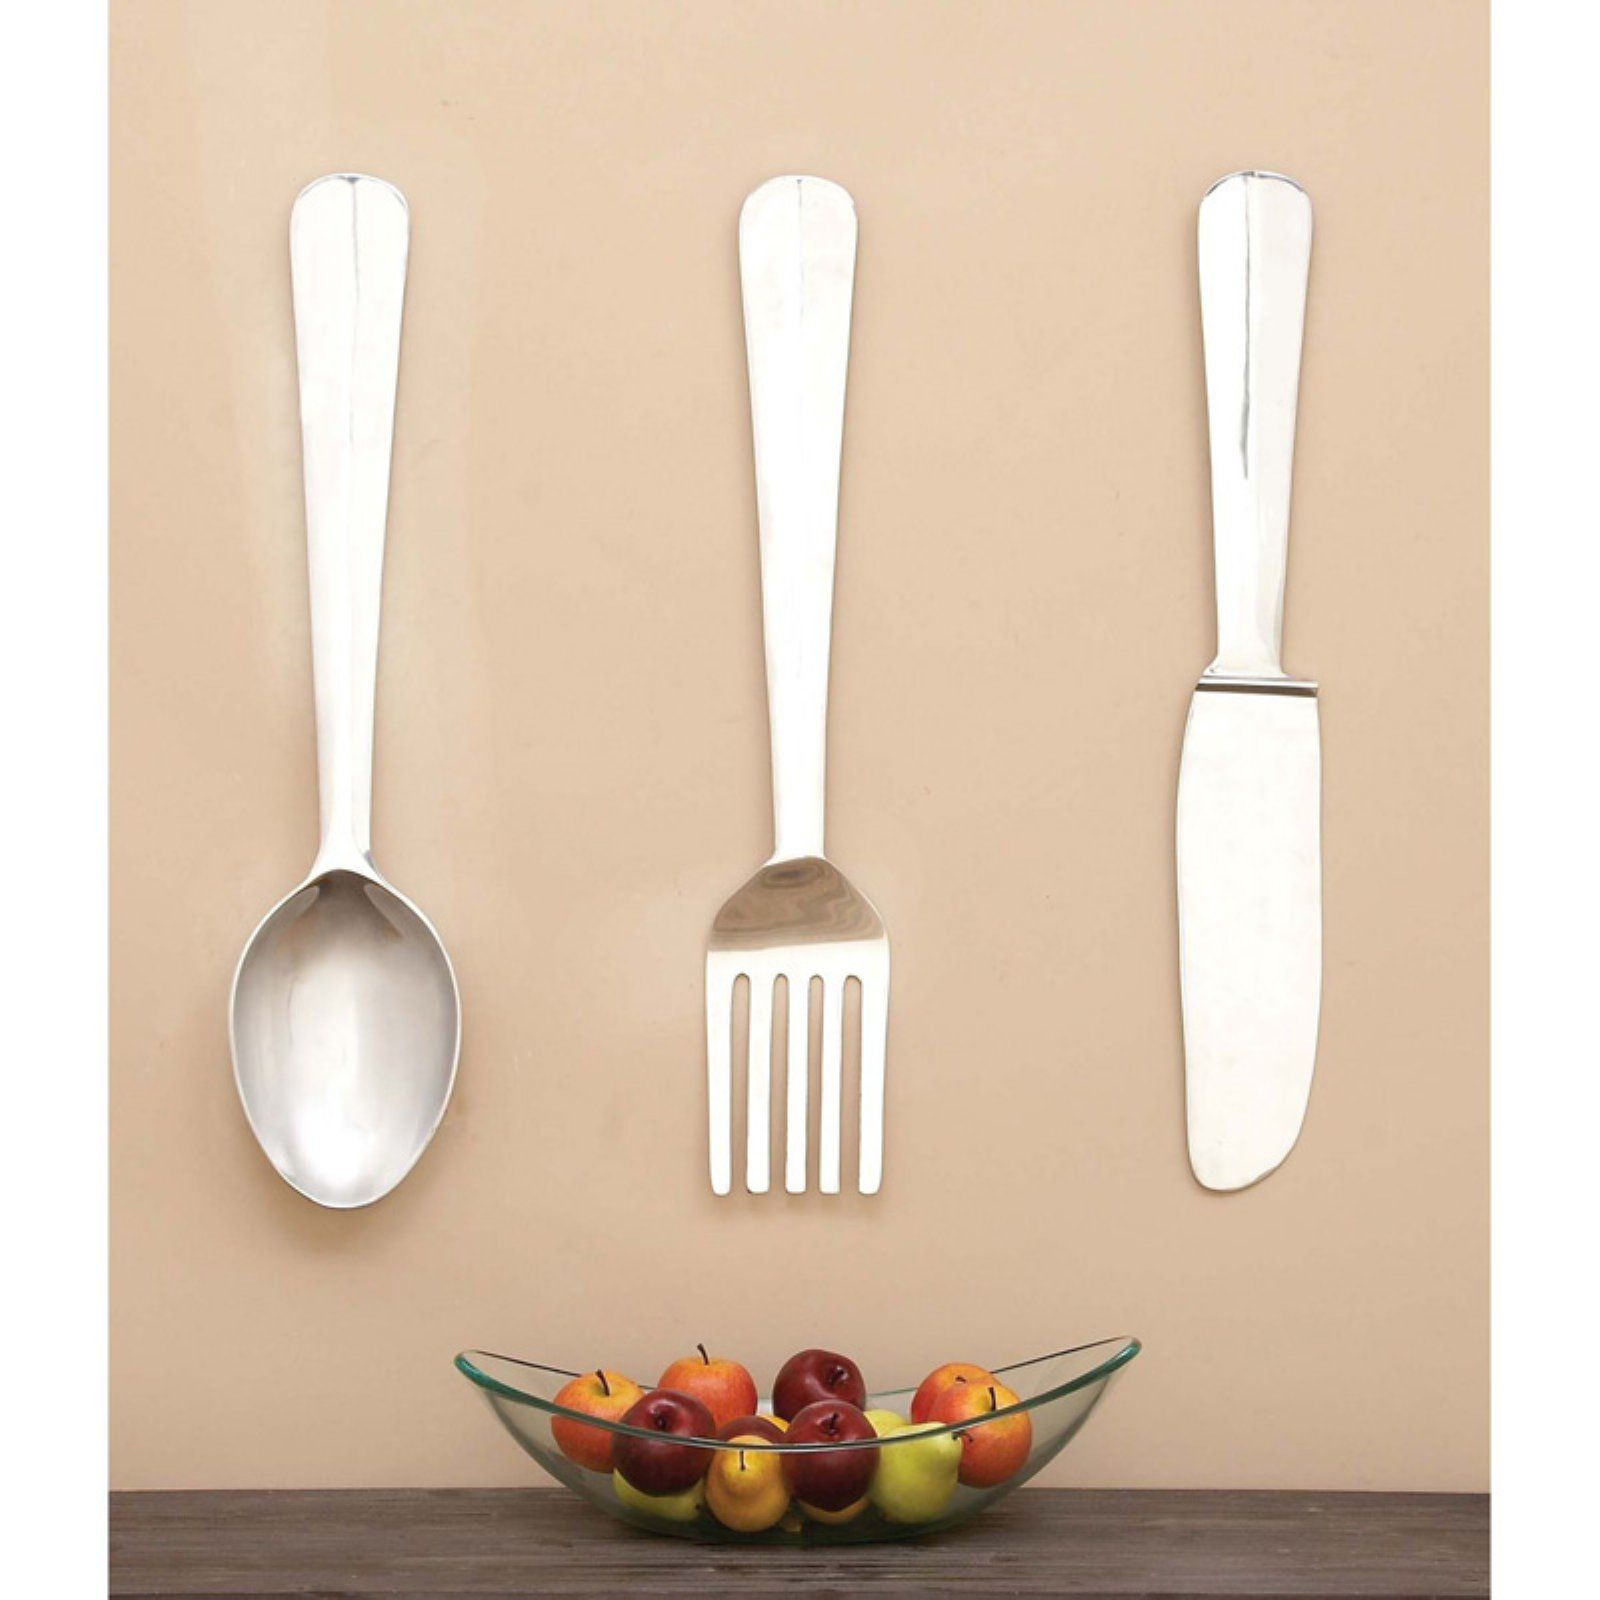 Decmode Aluminum Utensil Wall Sculpture Set Of 3 In 2020